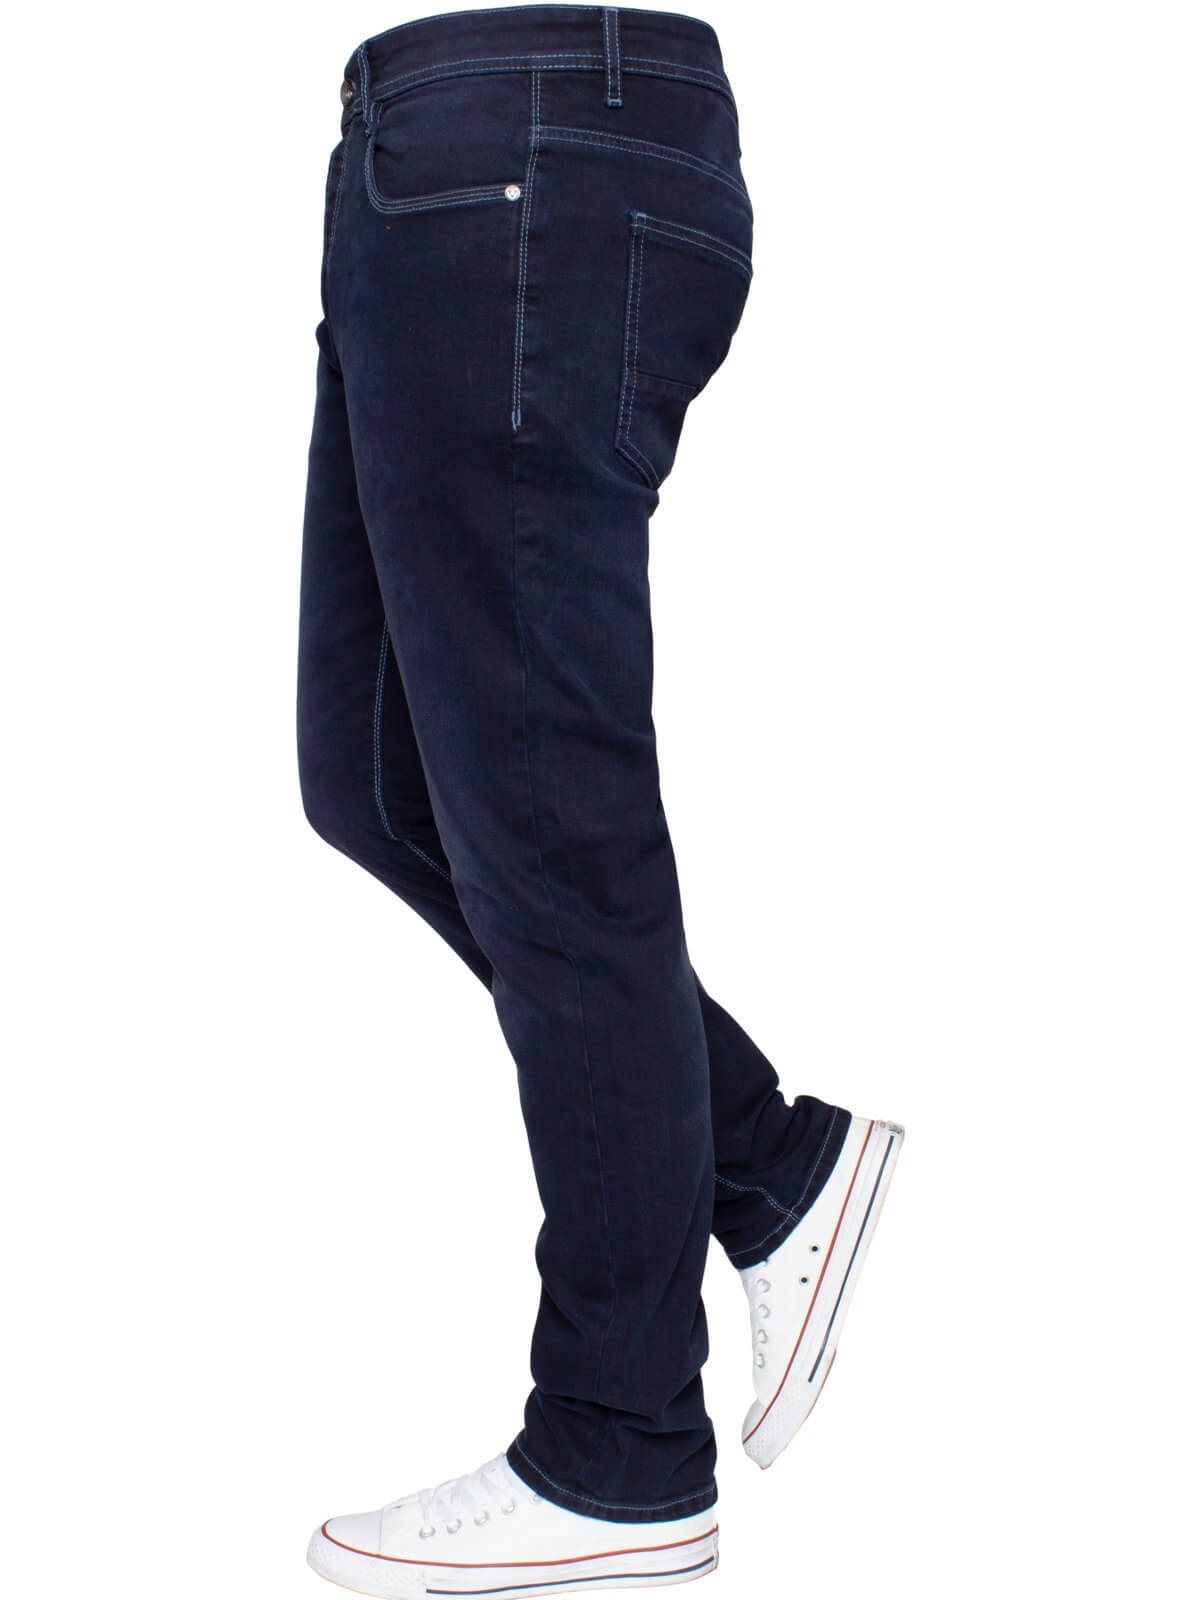 ETO | Mens Designer Tapered Fit Stretch Denim Jeans